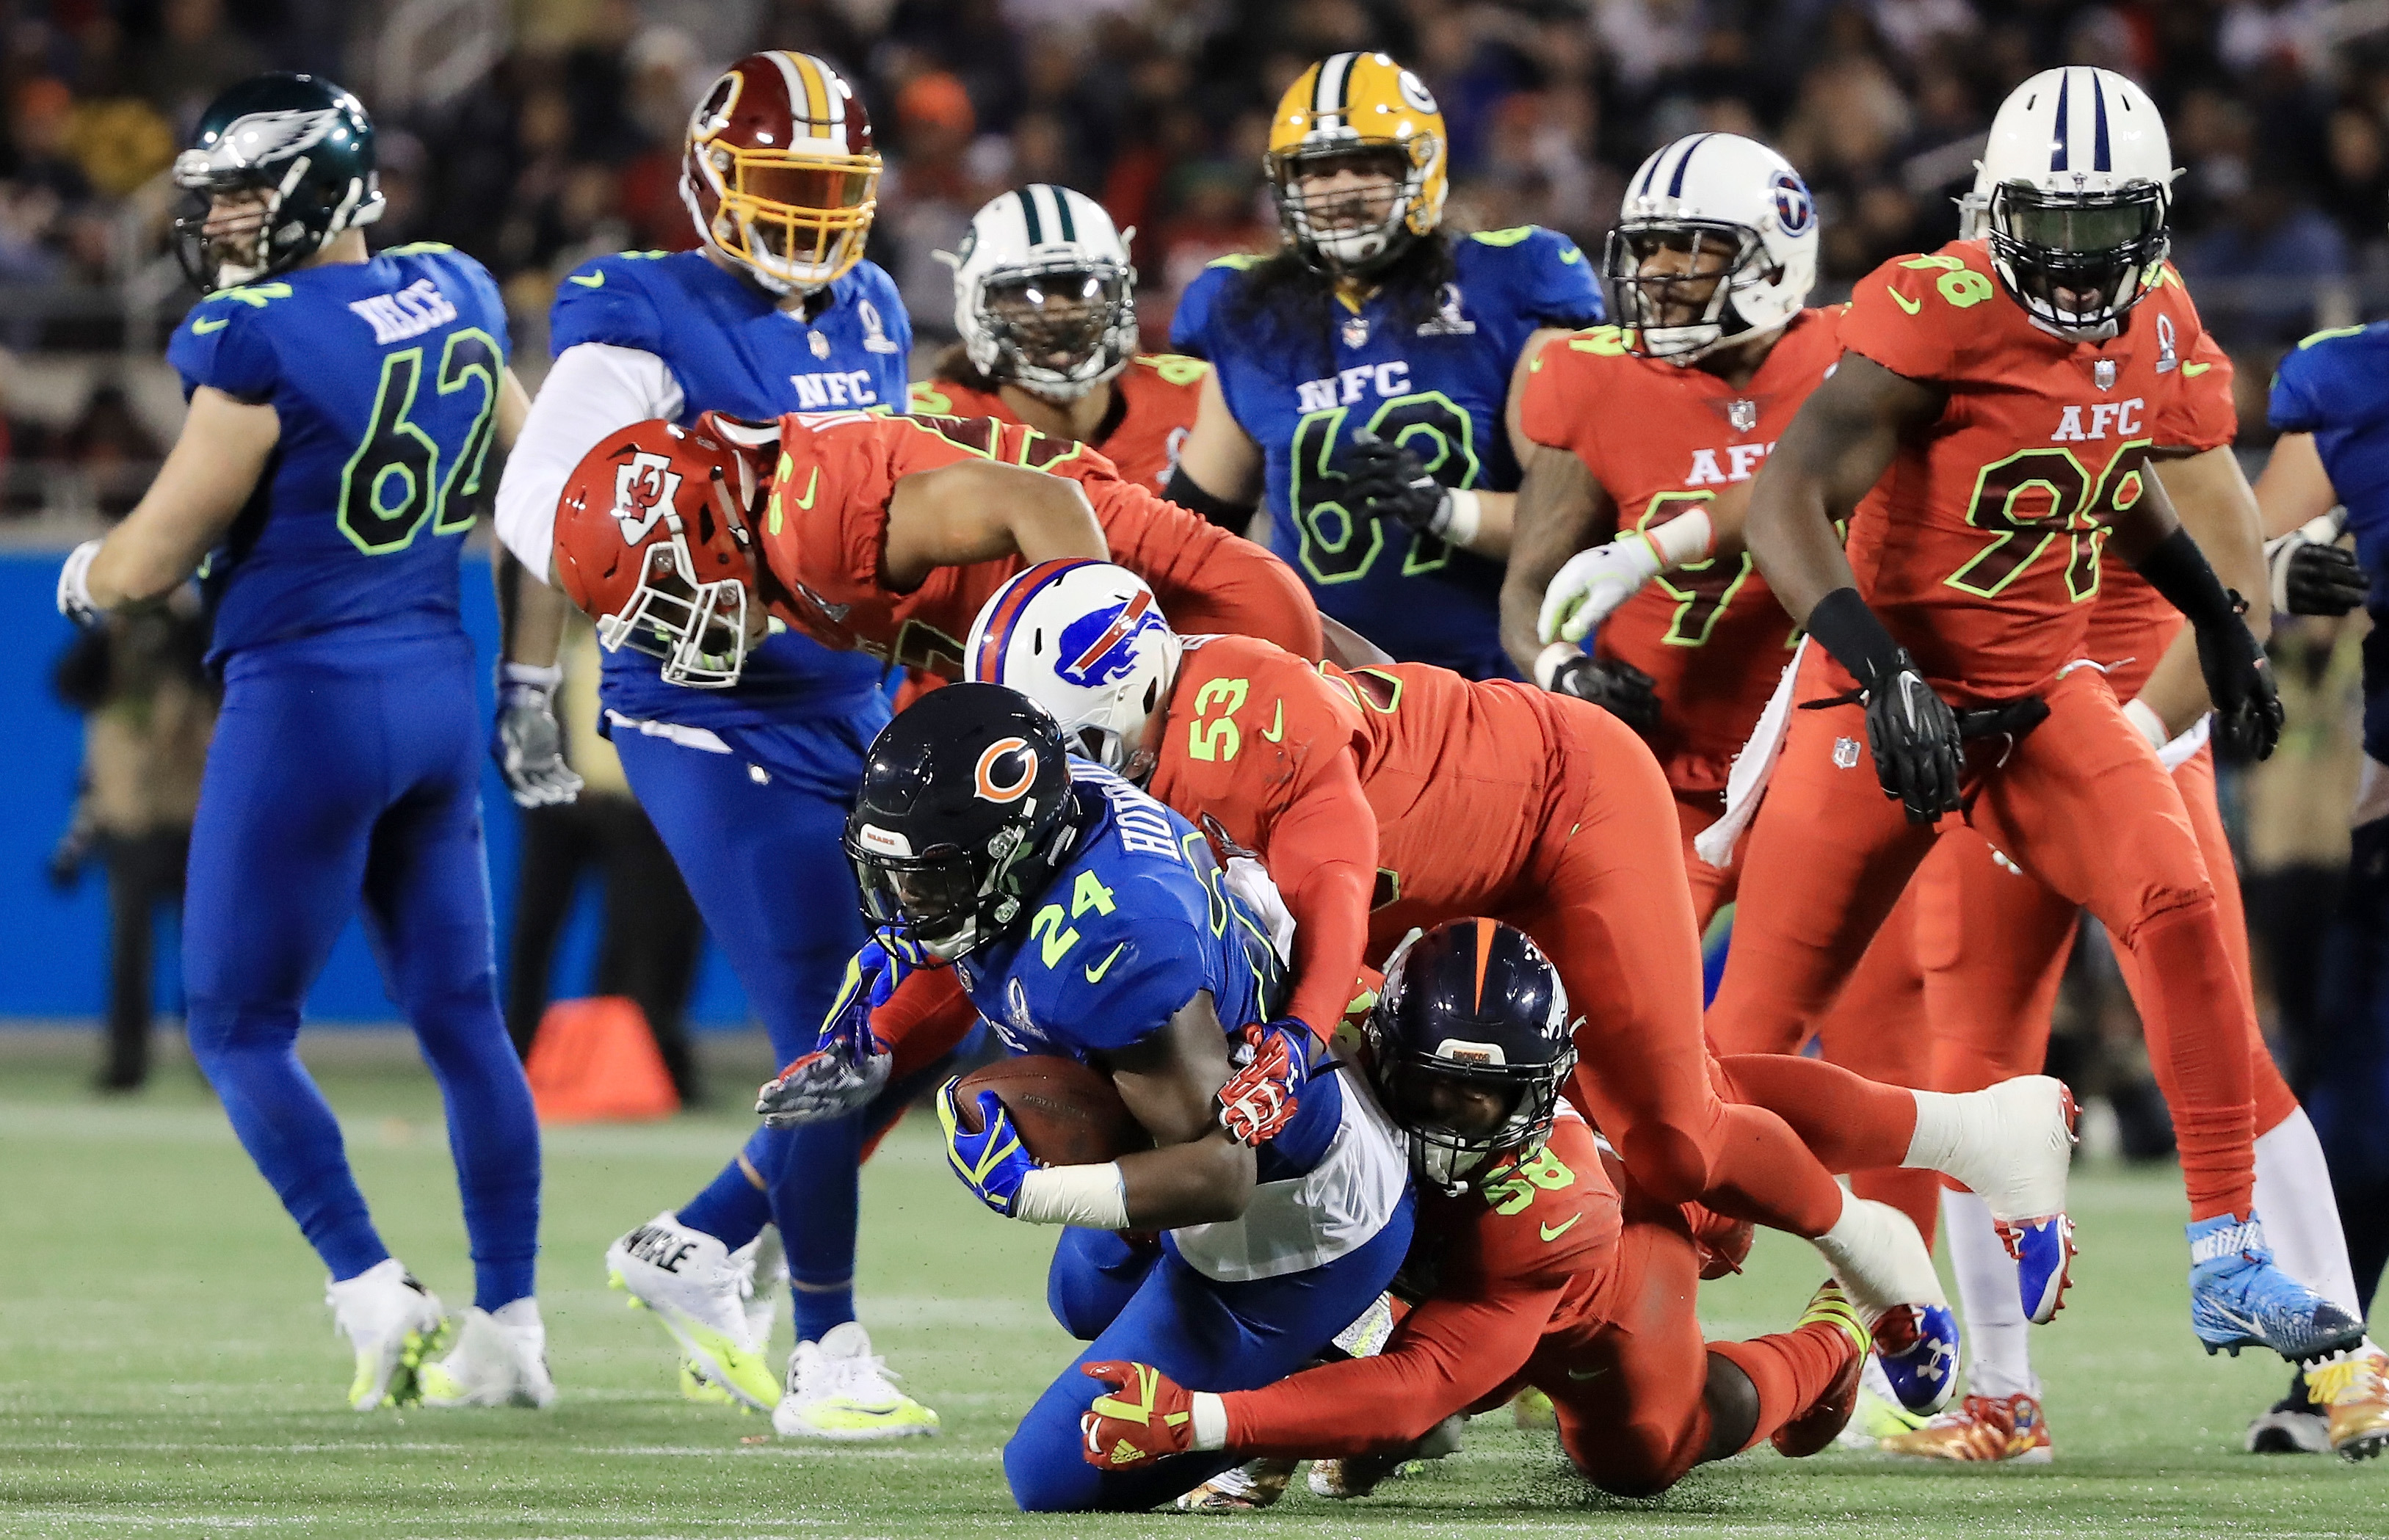 Jordan Howard  of the NFC is tackled in the fist half by the AFC during the NFL Pro Bowl Orlando, Fla.  (Sam Greenwood/Getty Images)